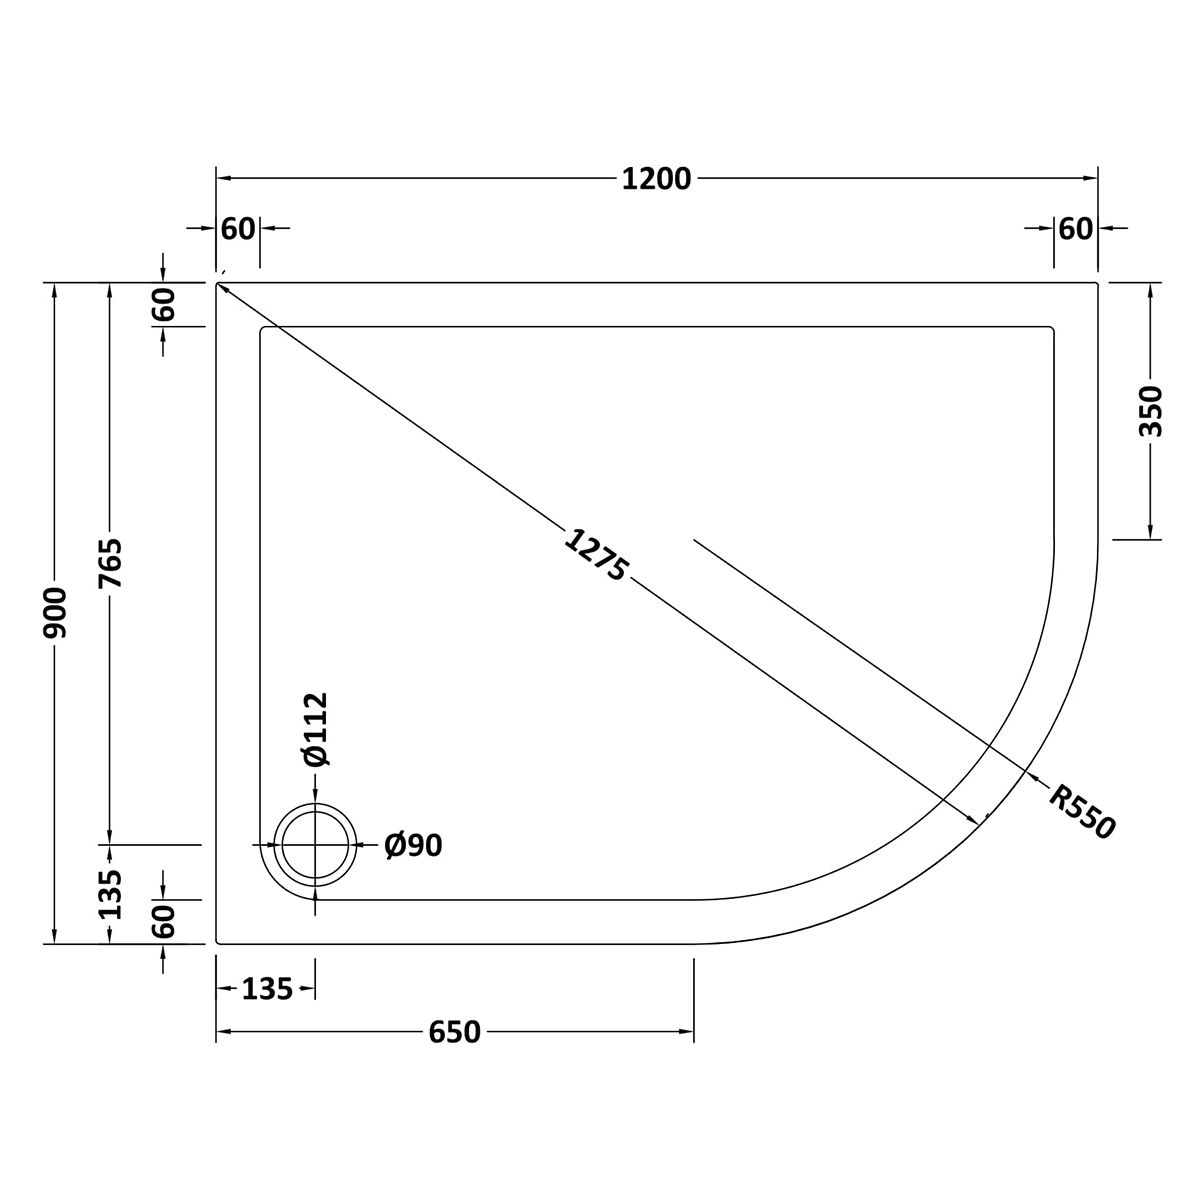 1200 x 900 Shower Tray Offset Quadrant Low Profile Right Hand by Pearlstone Line Drawing